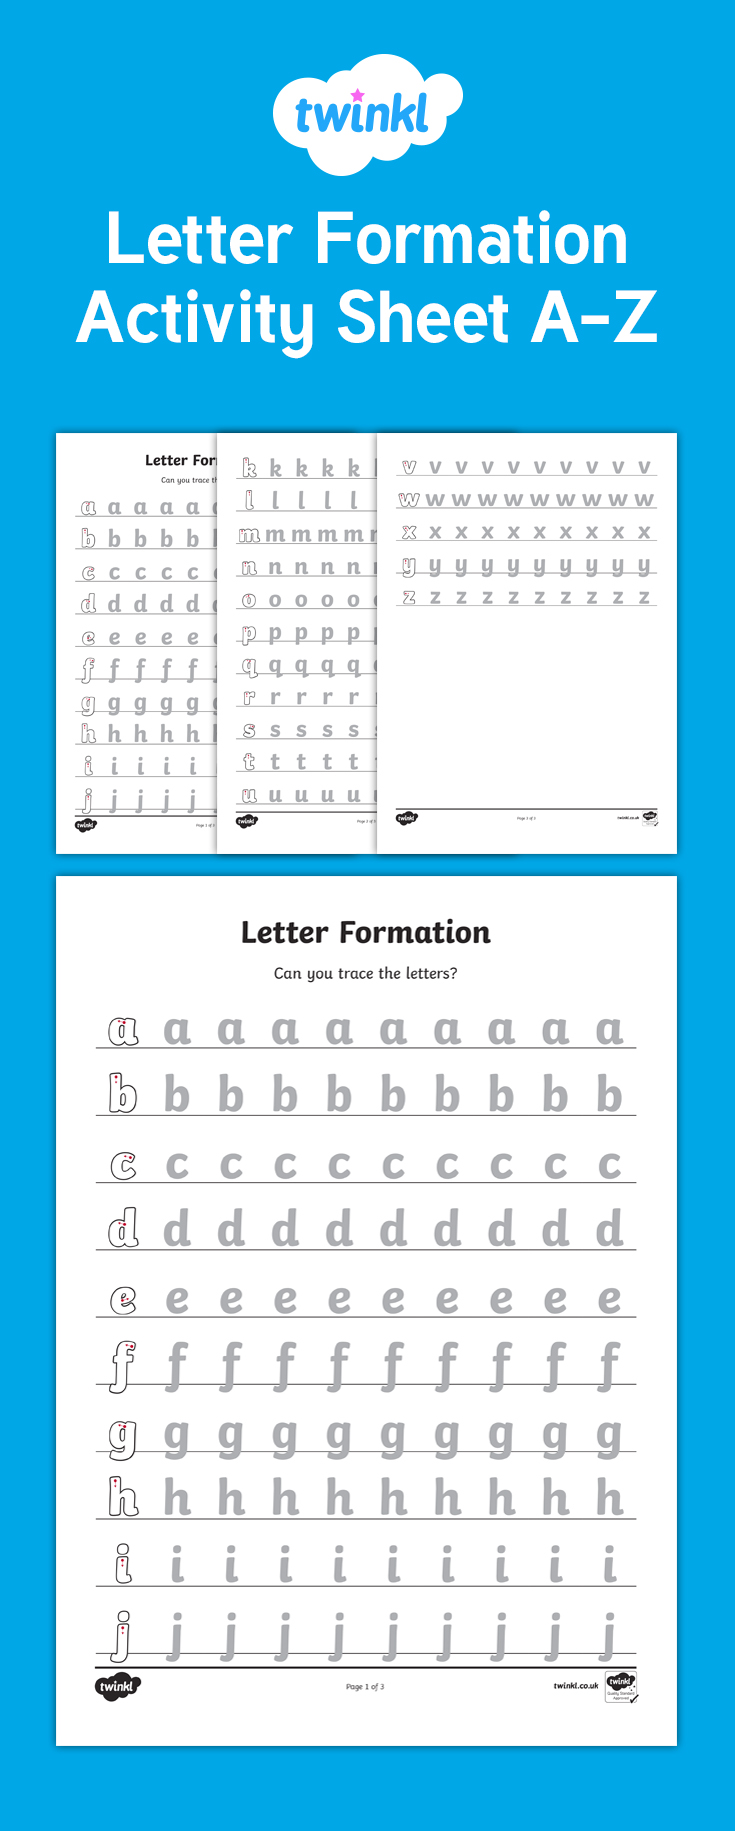 A Set Of Letter Formation Worksheets For Each Letter Of The